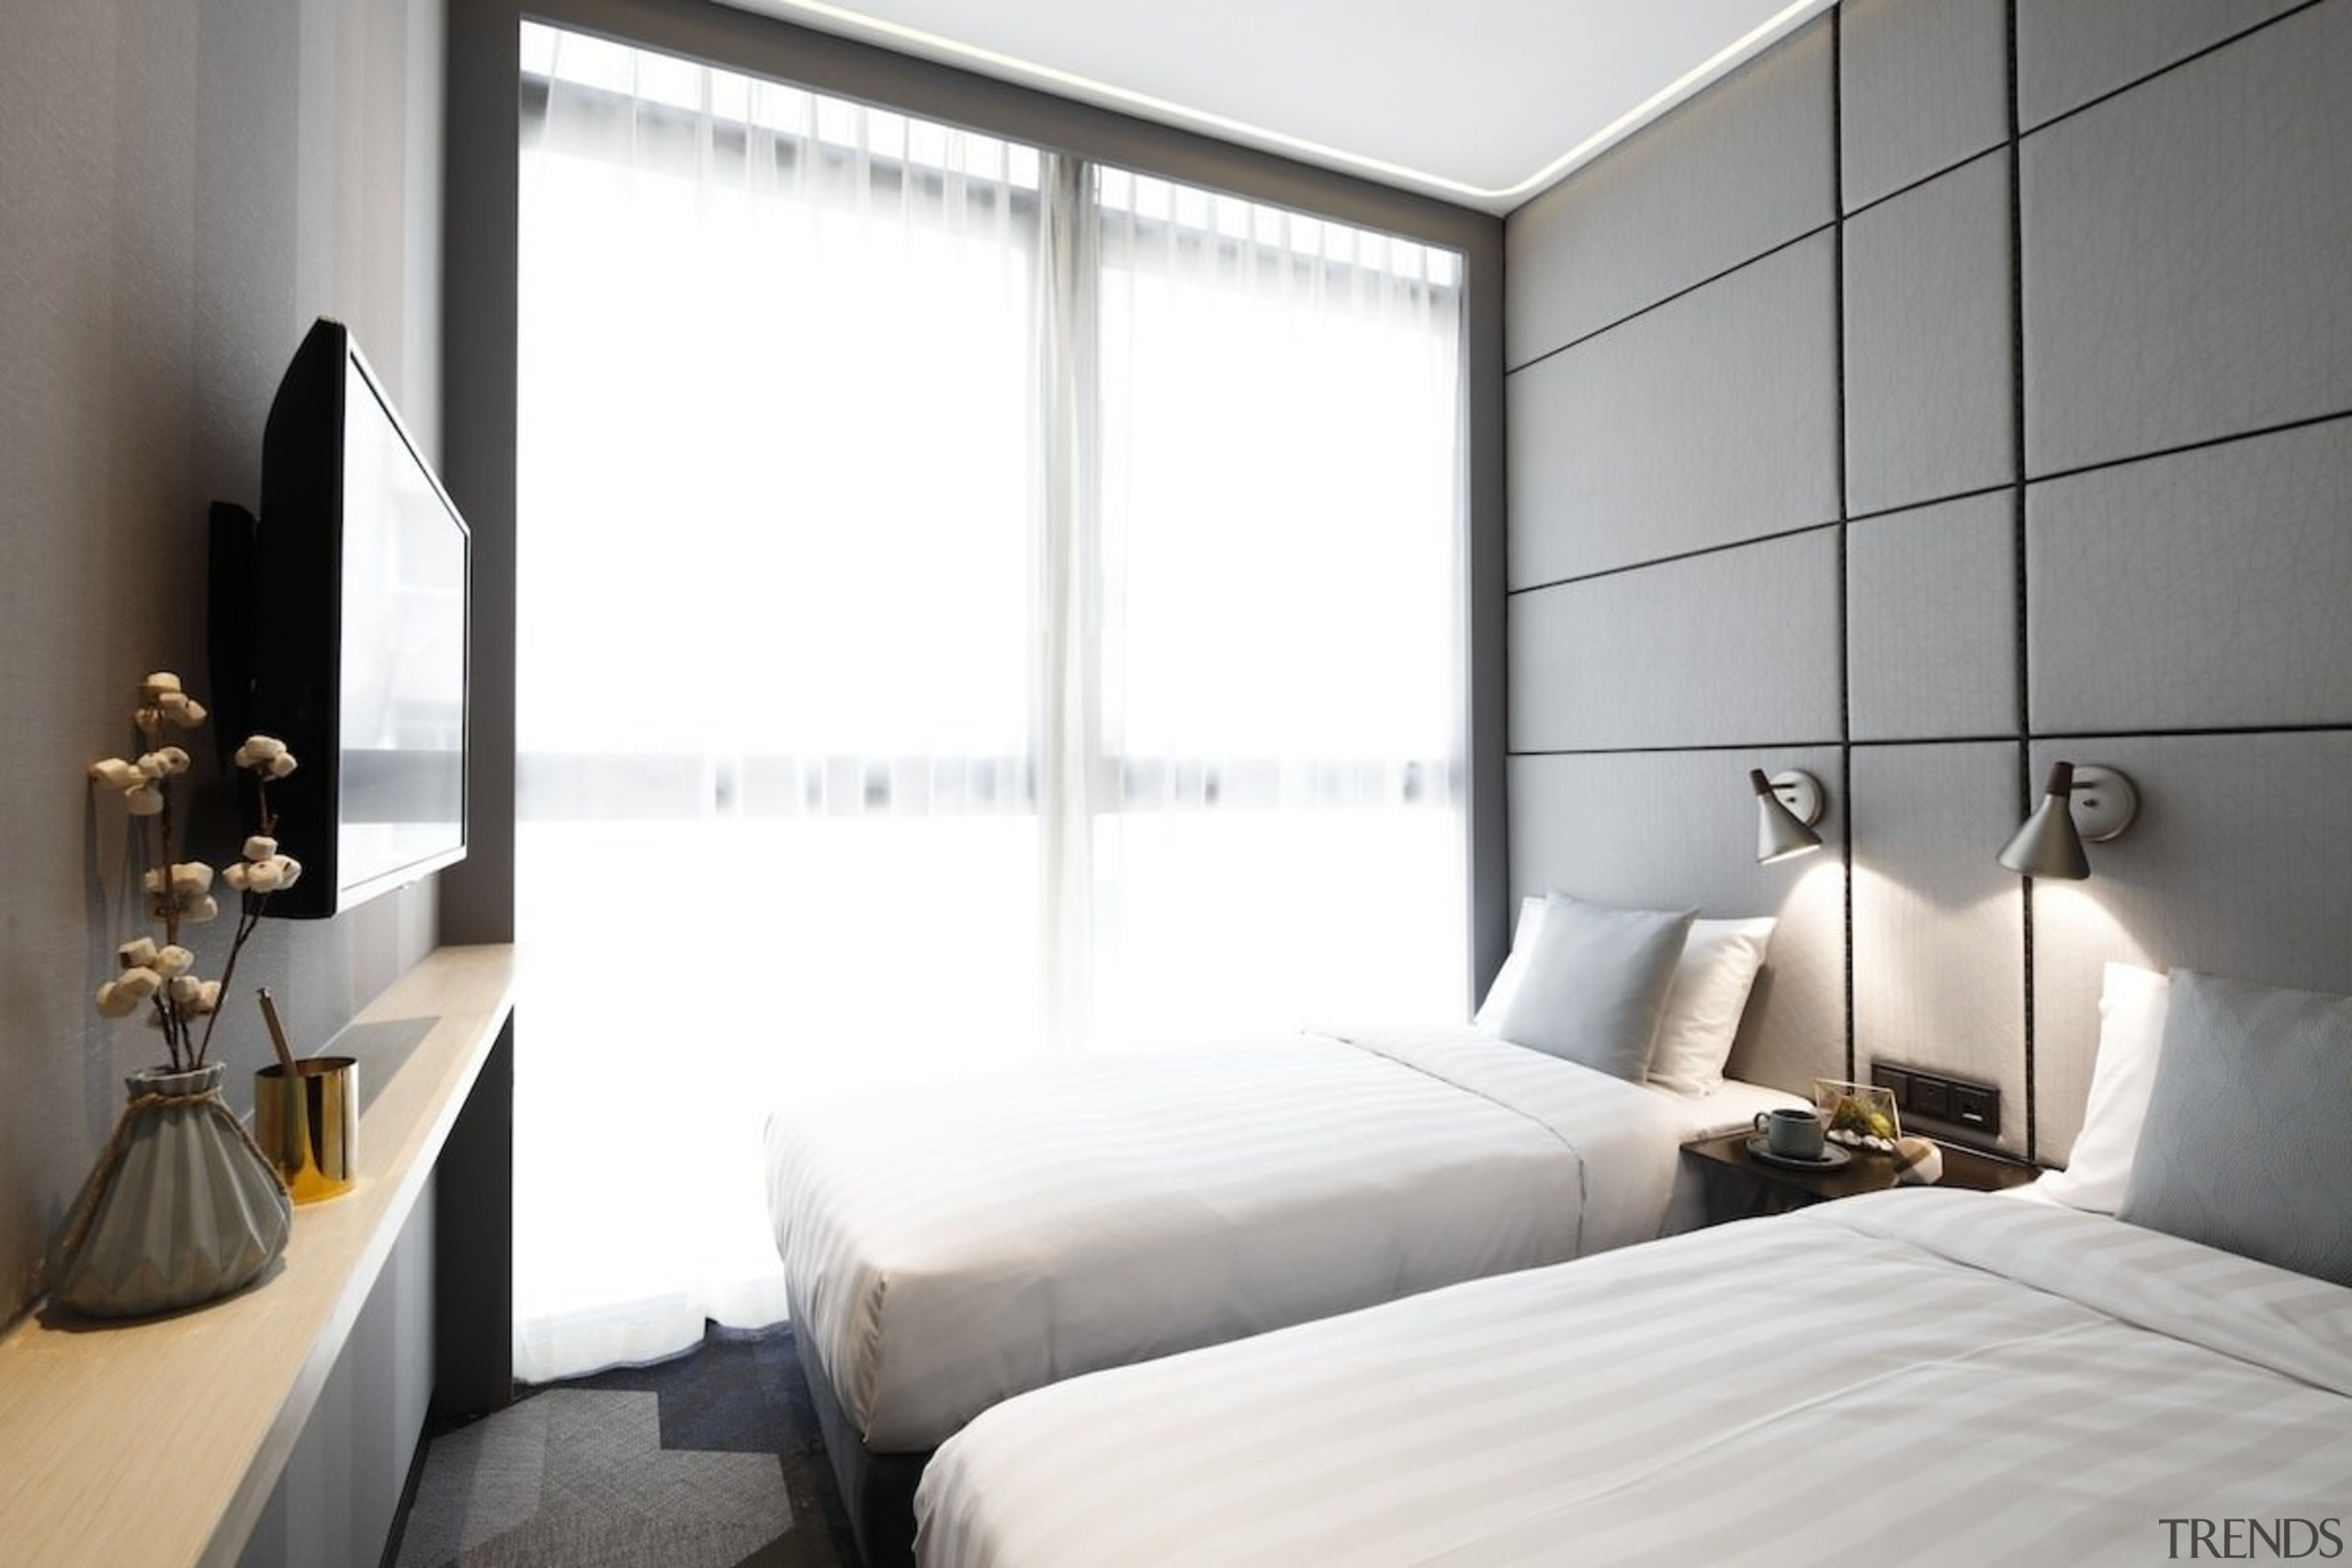 Hotel Ease Access - Hotel Ease Access - architecture, bedroom, ceiling, hotel, interior design, property, room, suite, window, white, gray